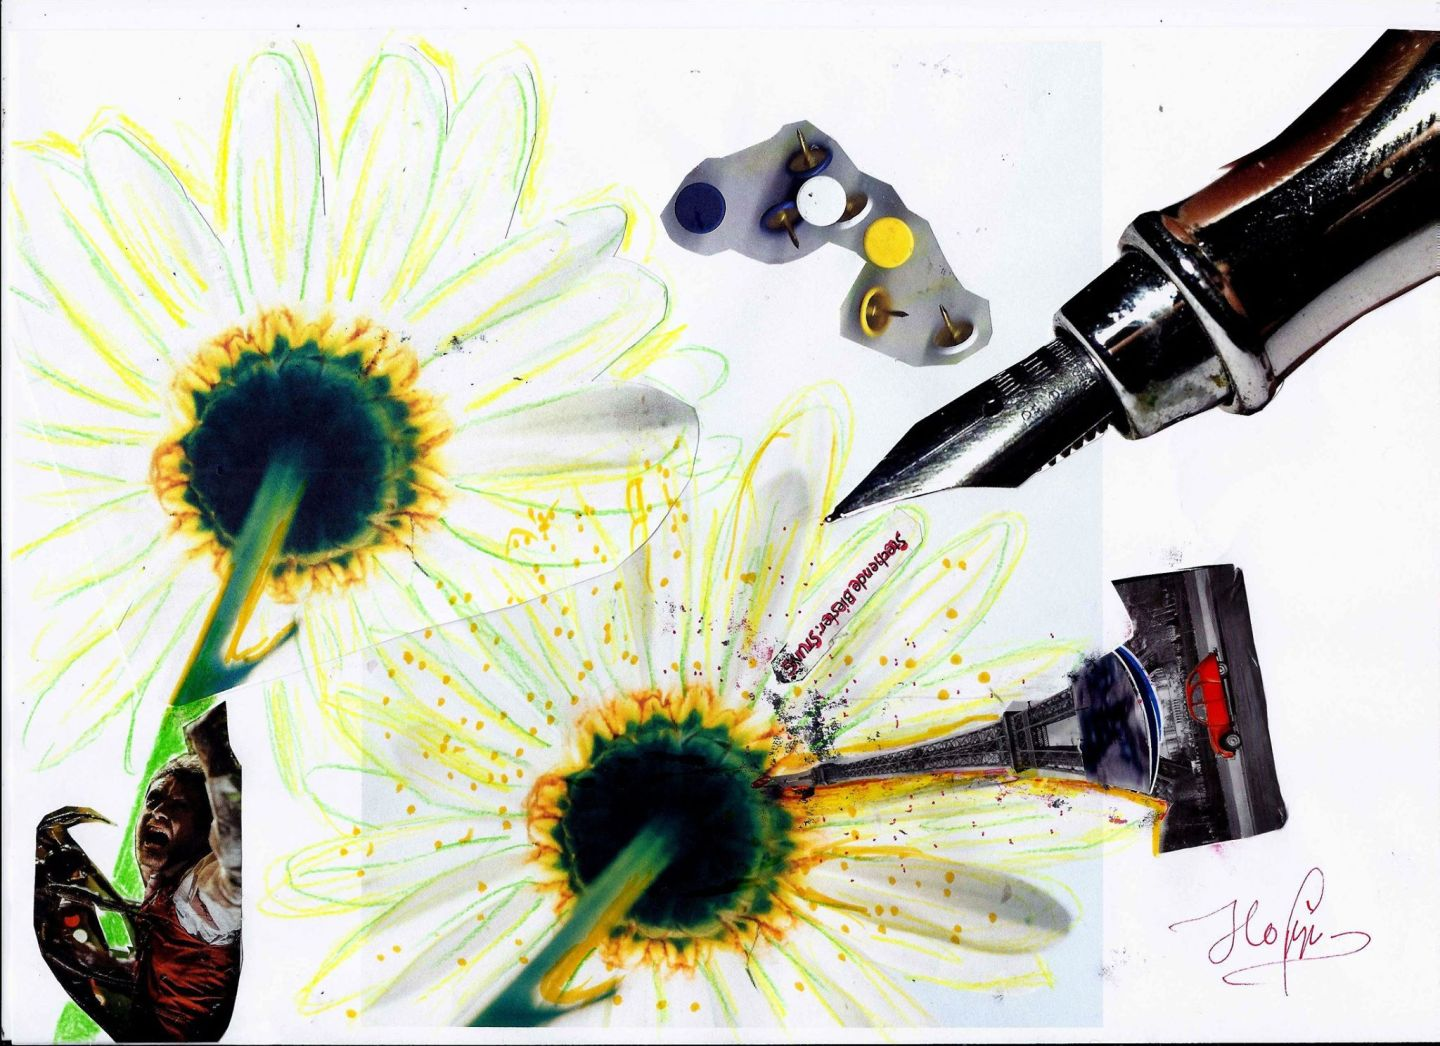 Munich Artists Brigitte Hoppstock - Daisy